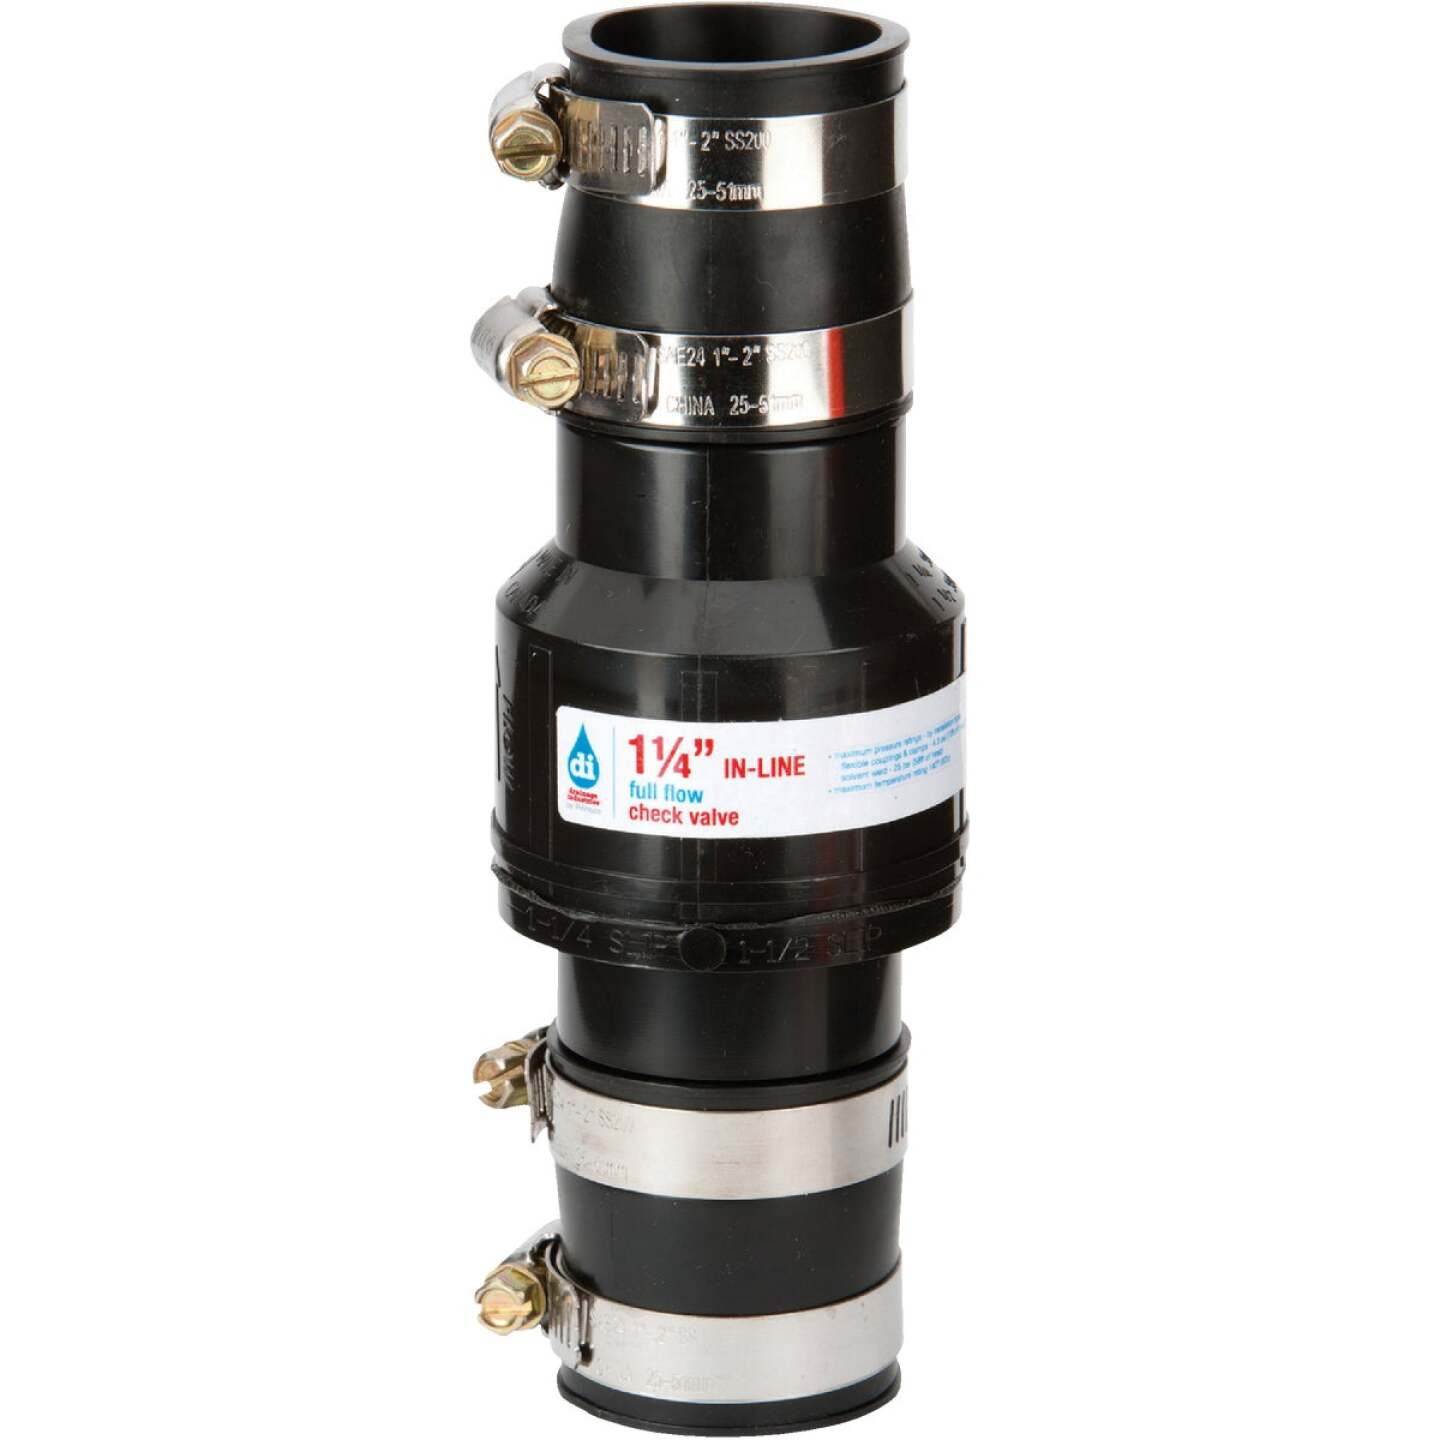 Drainage Industries 1-1/4 In. ABS Thermoplastic In-Line Sump Pump Check Valve Image 1